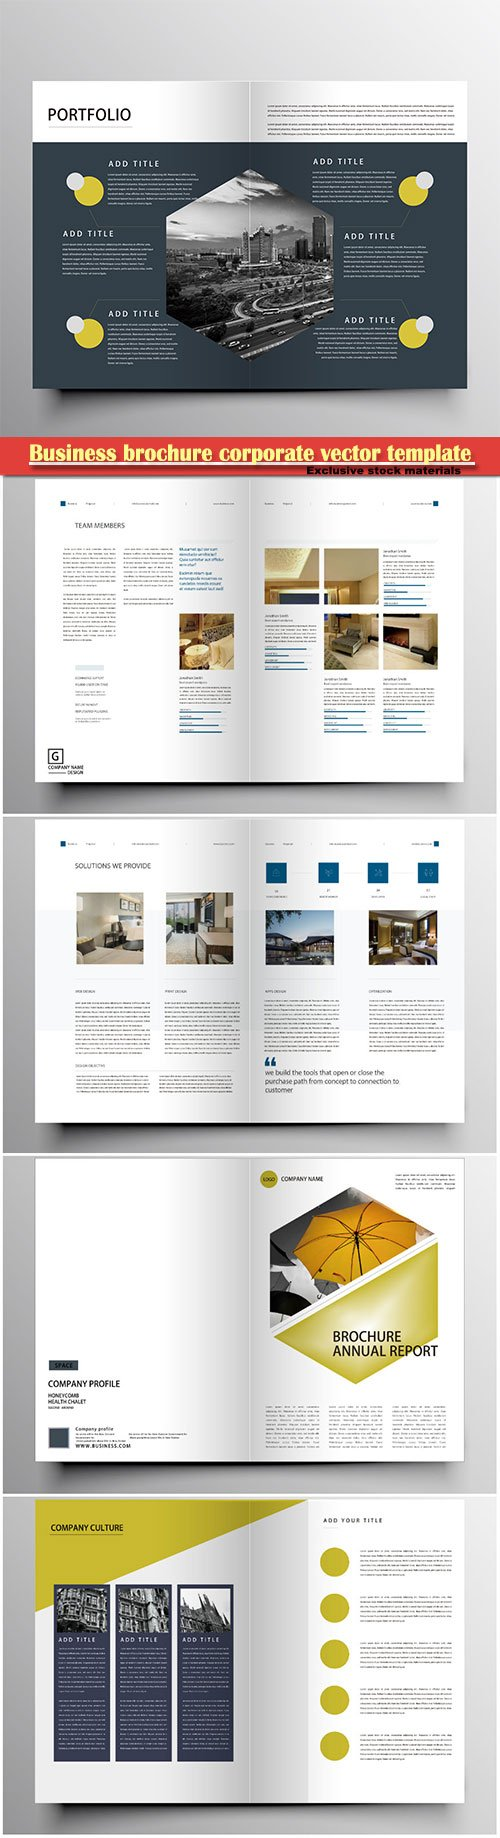 Business brochure corporate vector template, magazine flyer mockup # 51